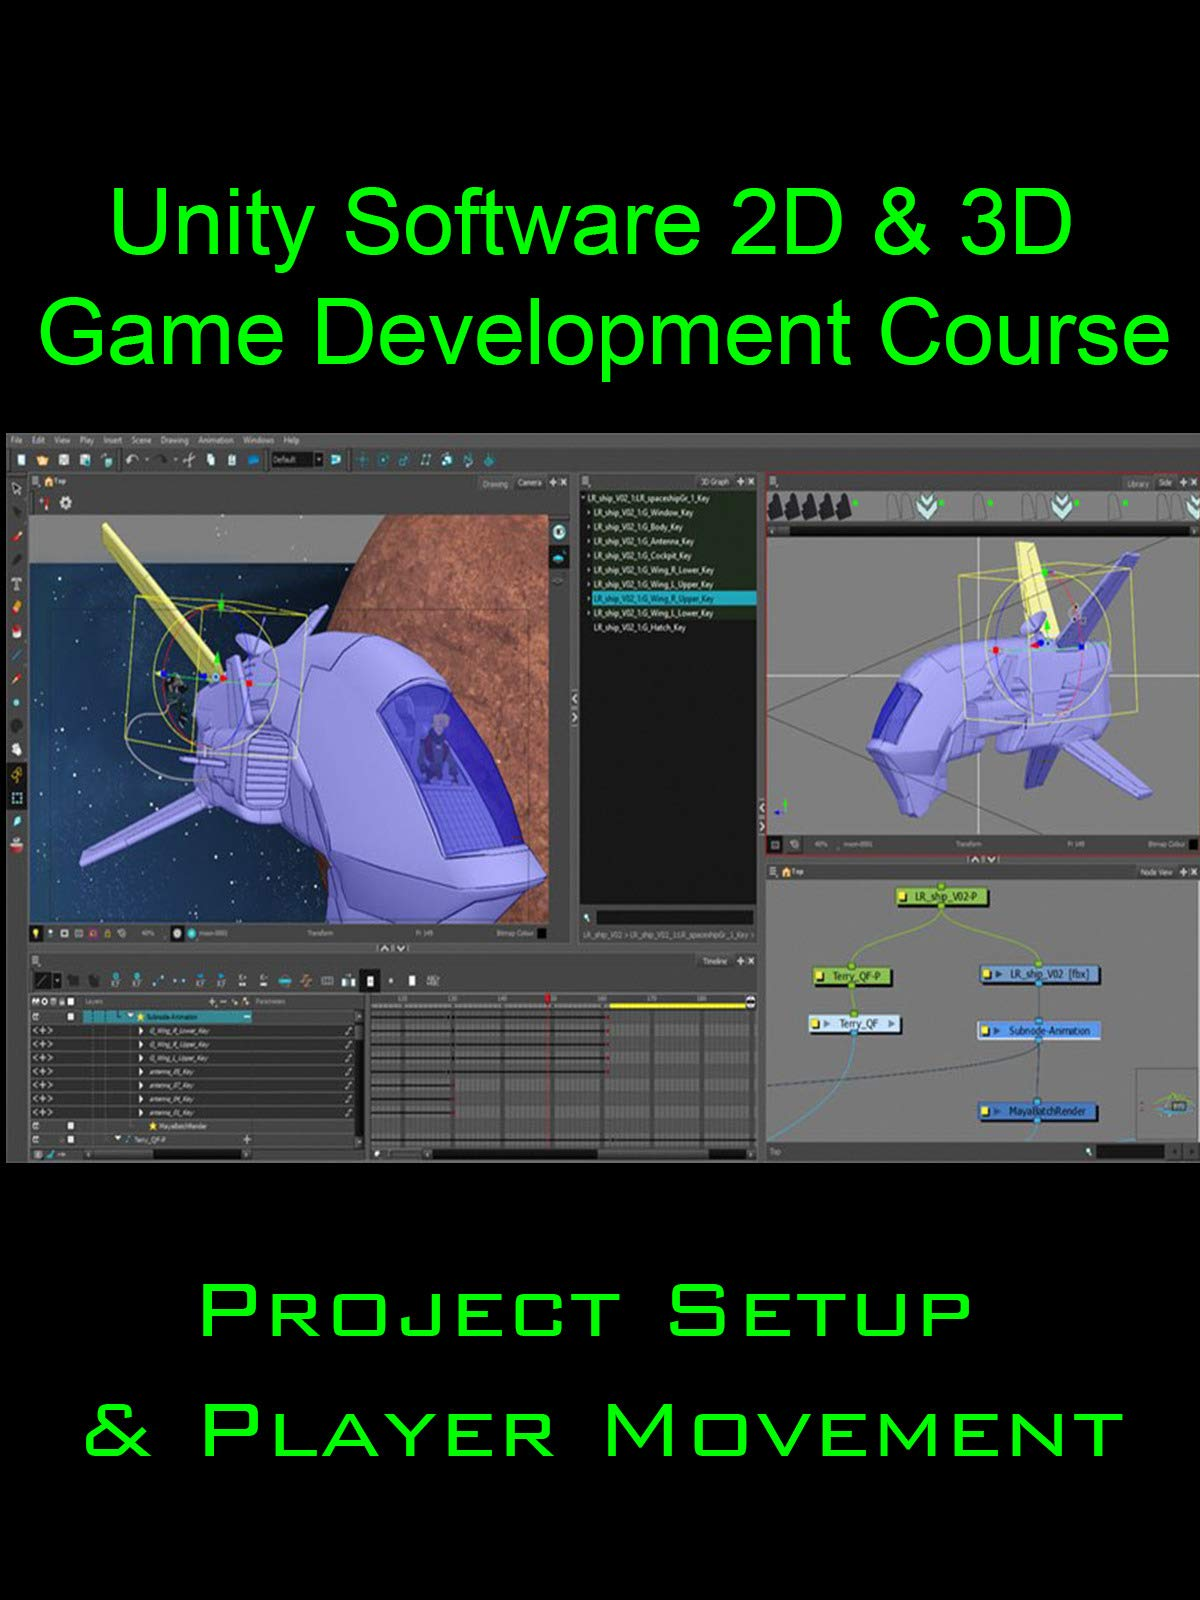 Unity 2D and 3D Game Developer Course-Project Setup and Player Movement